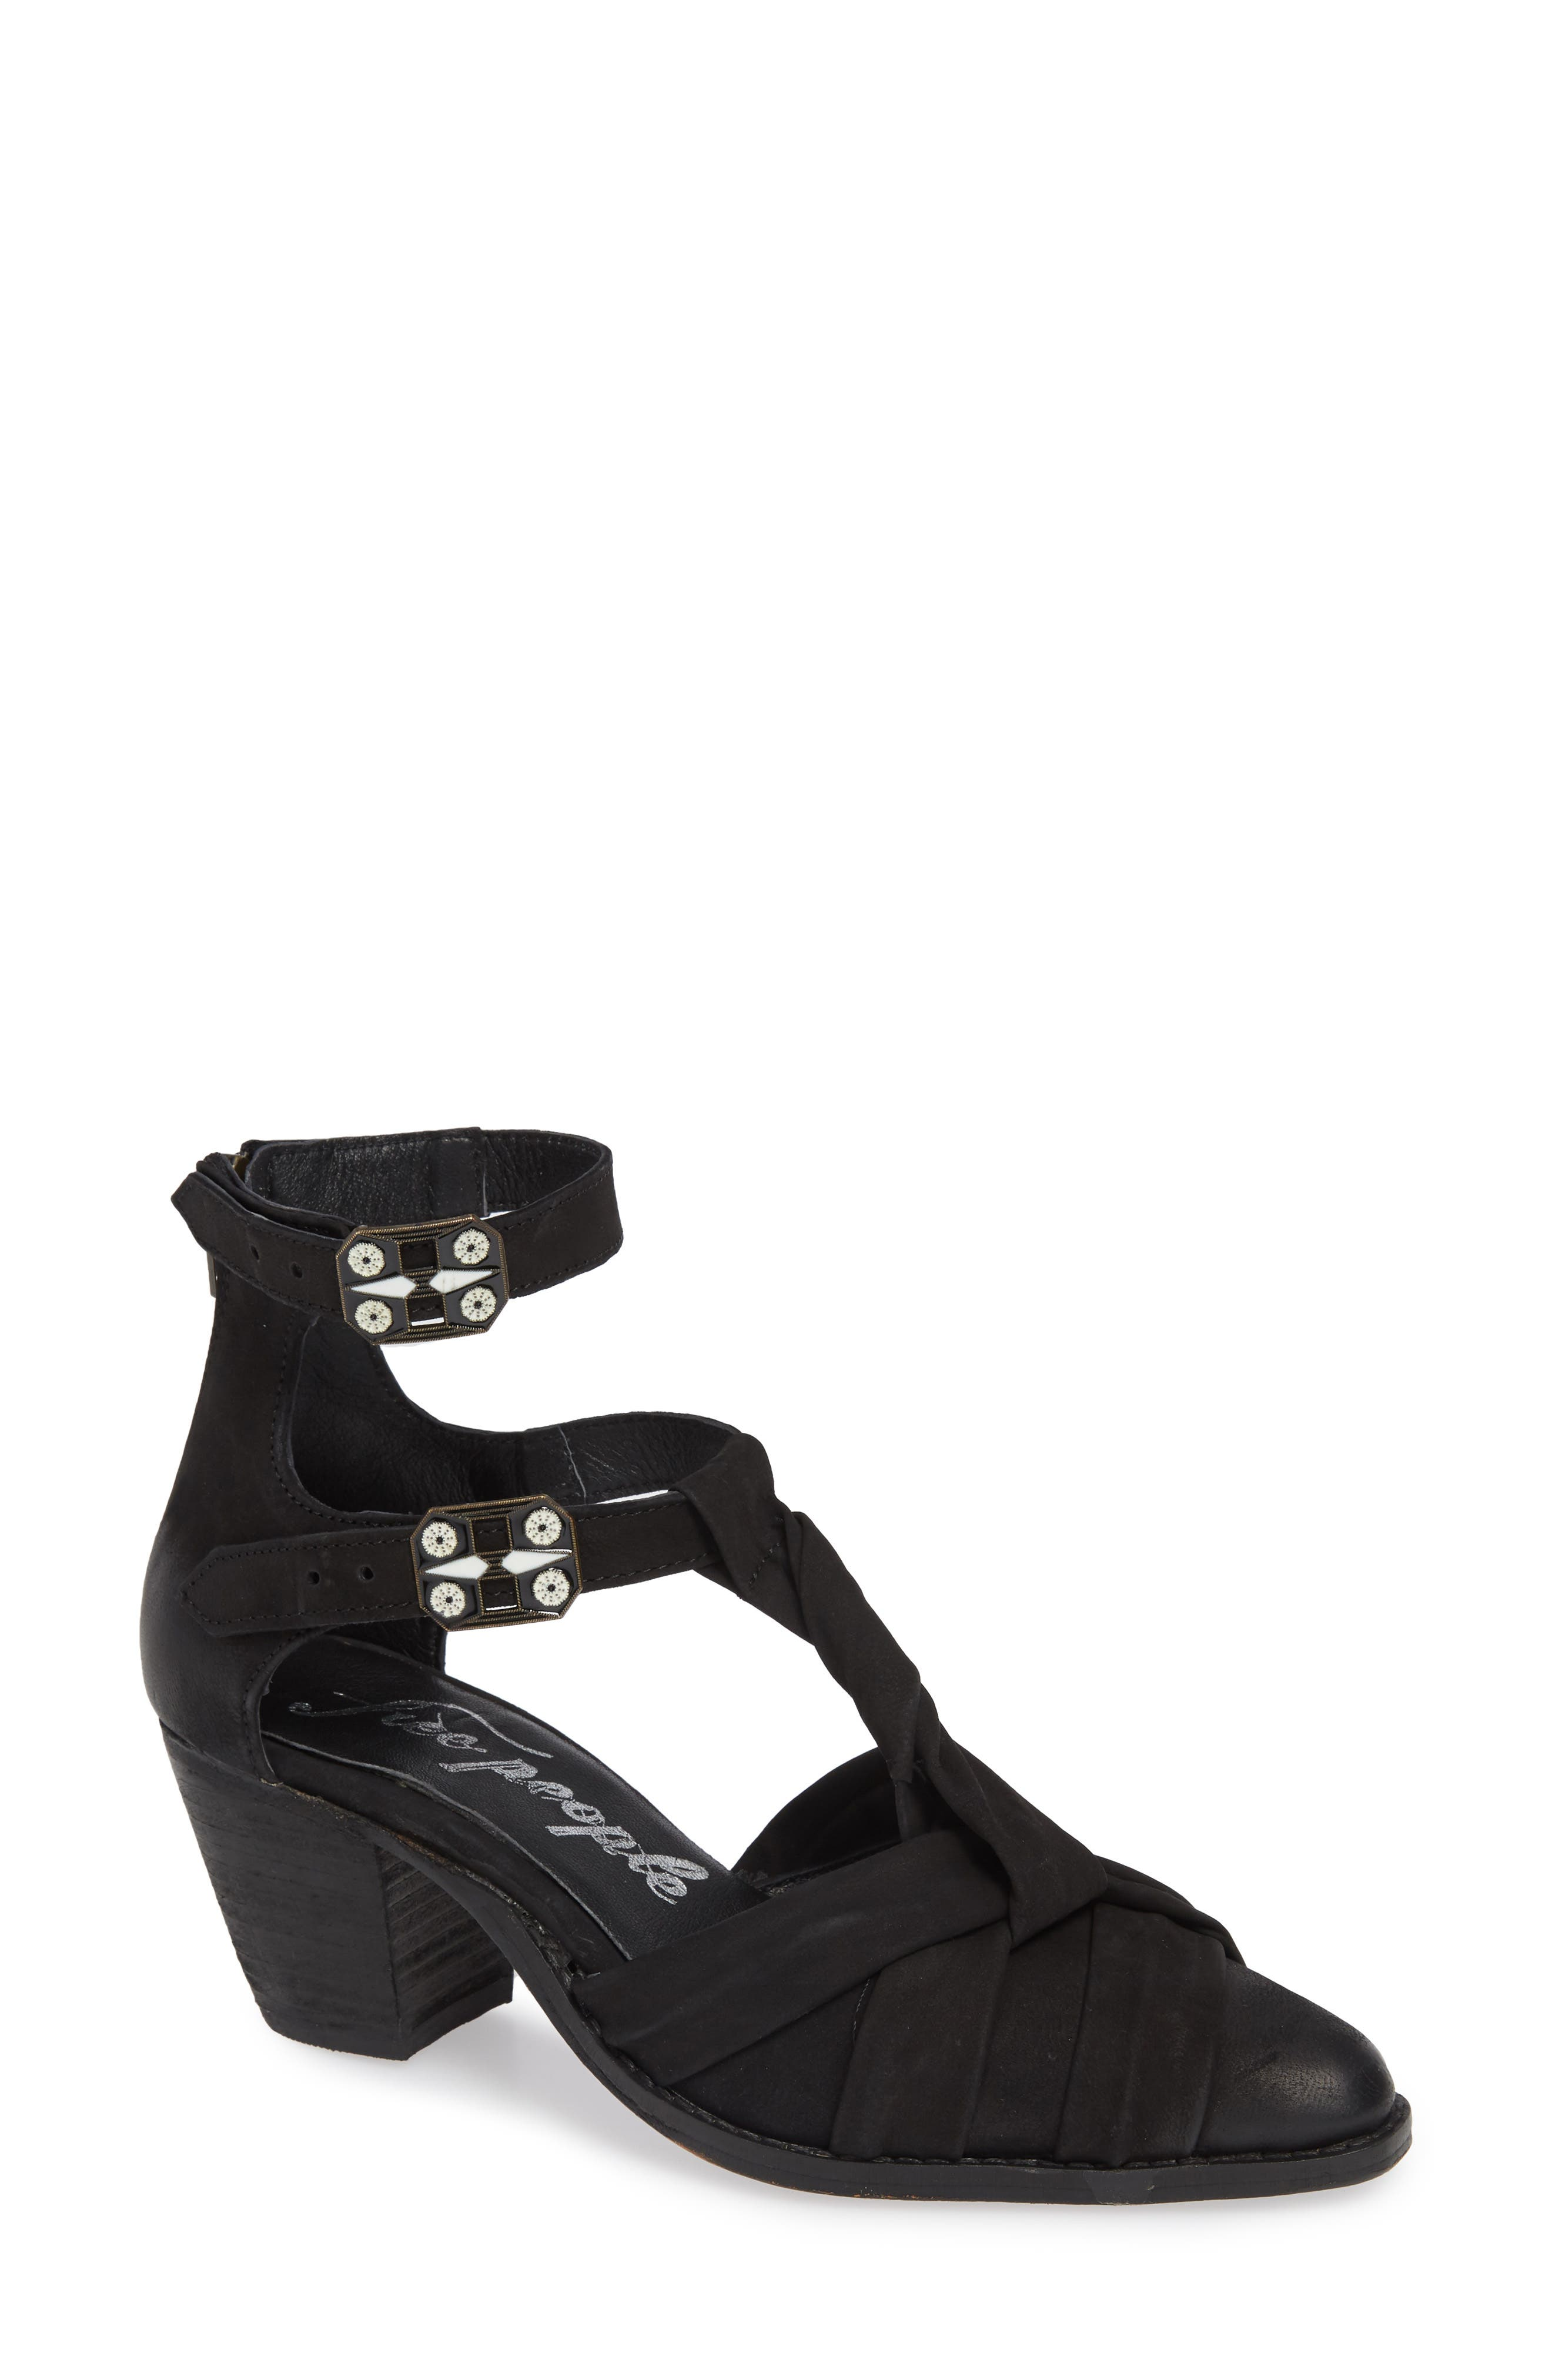 Free People Canosa Cutout Bootie, Black